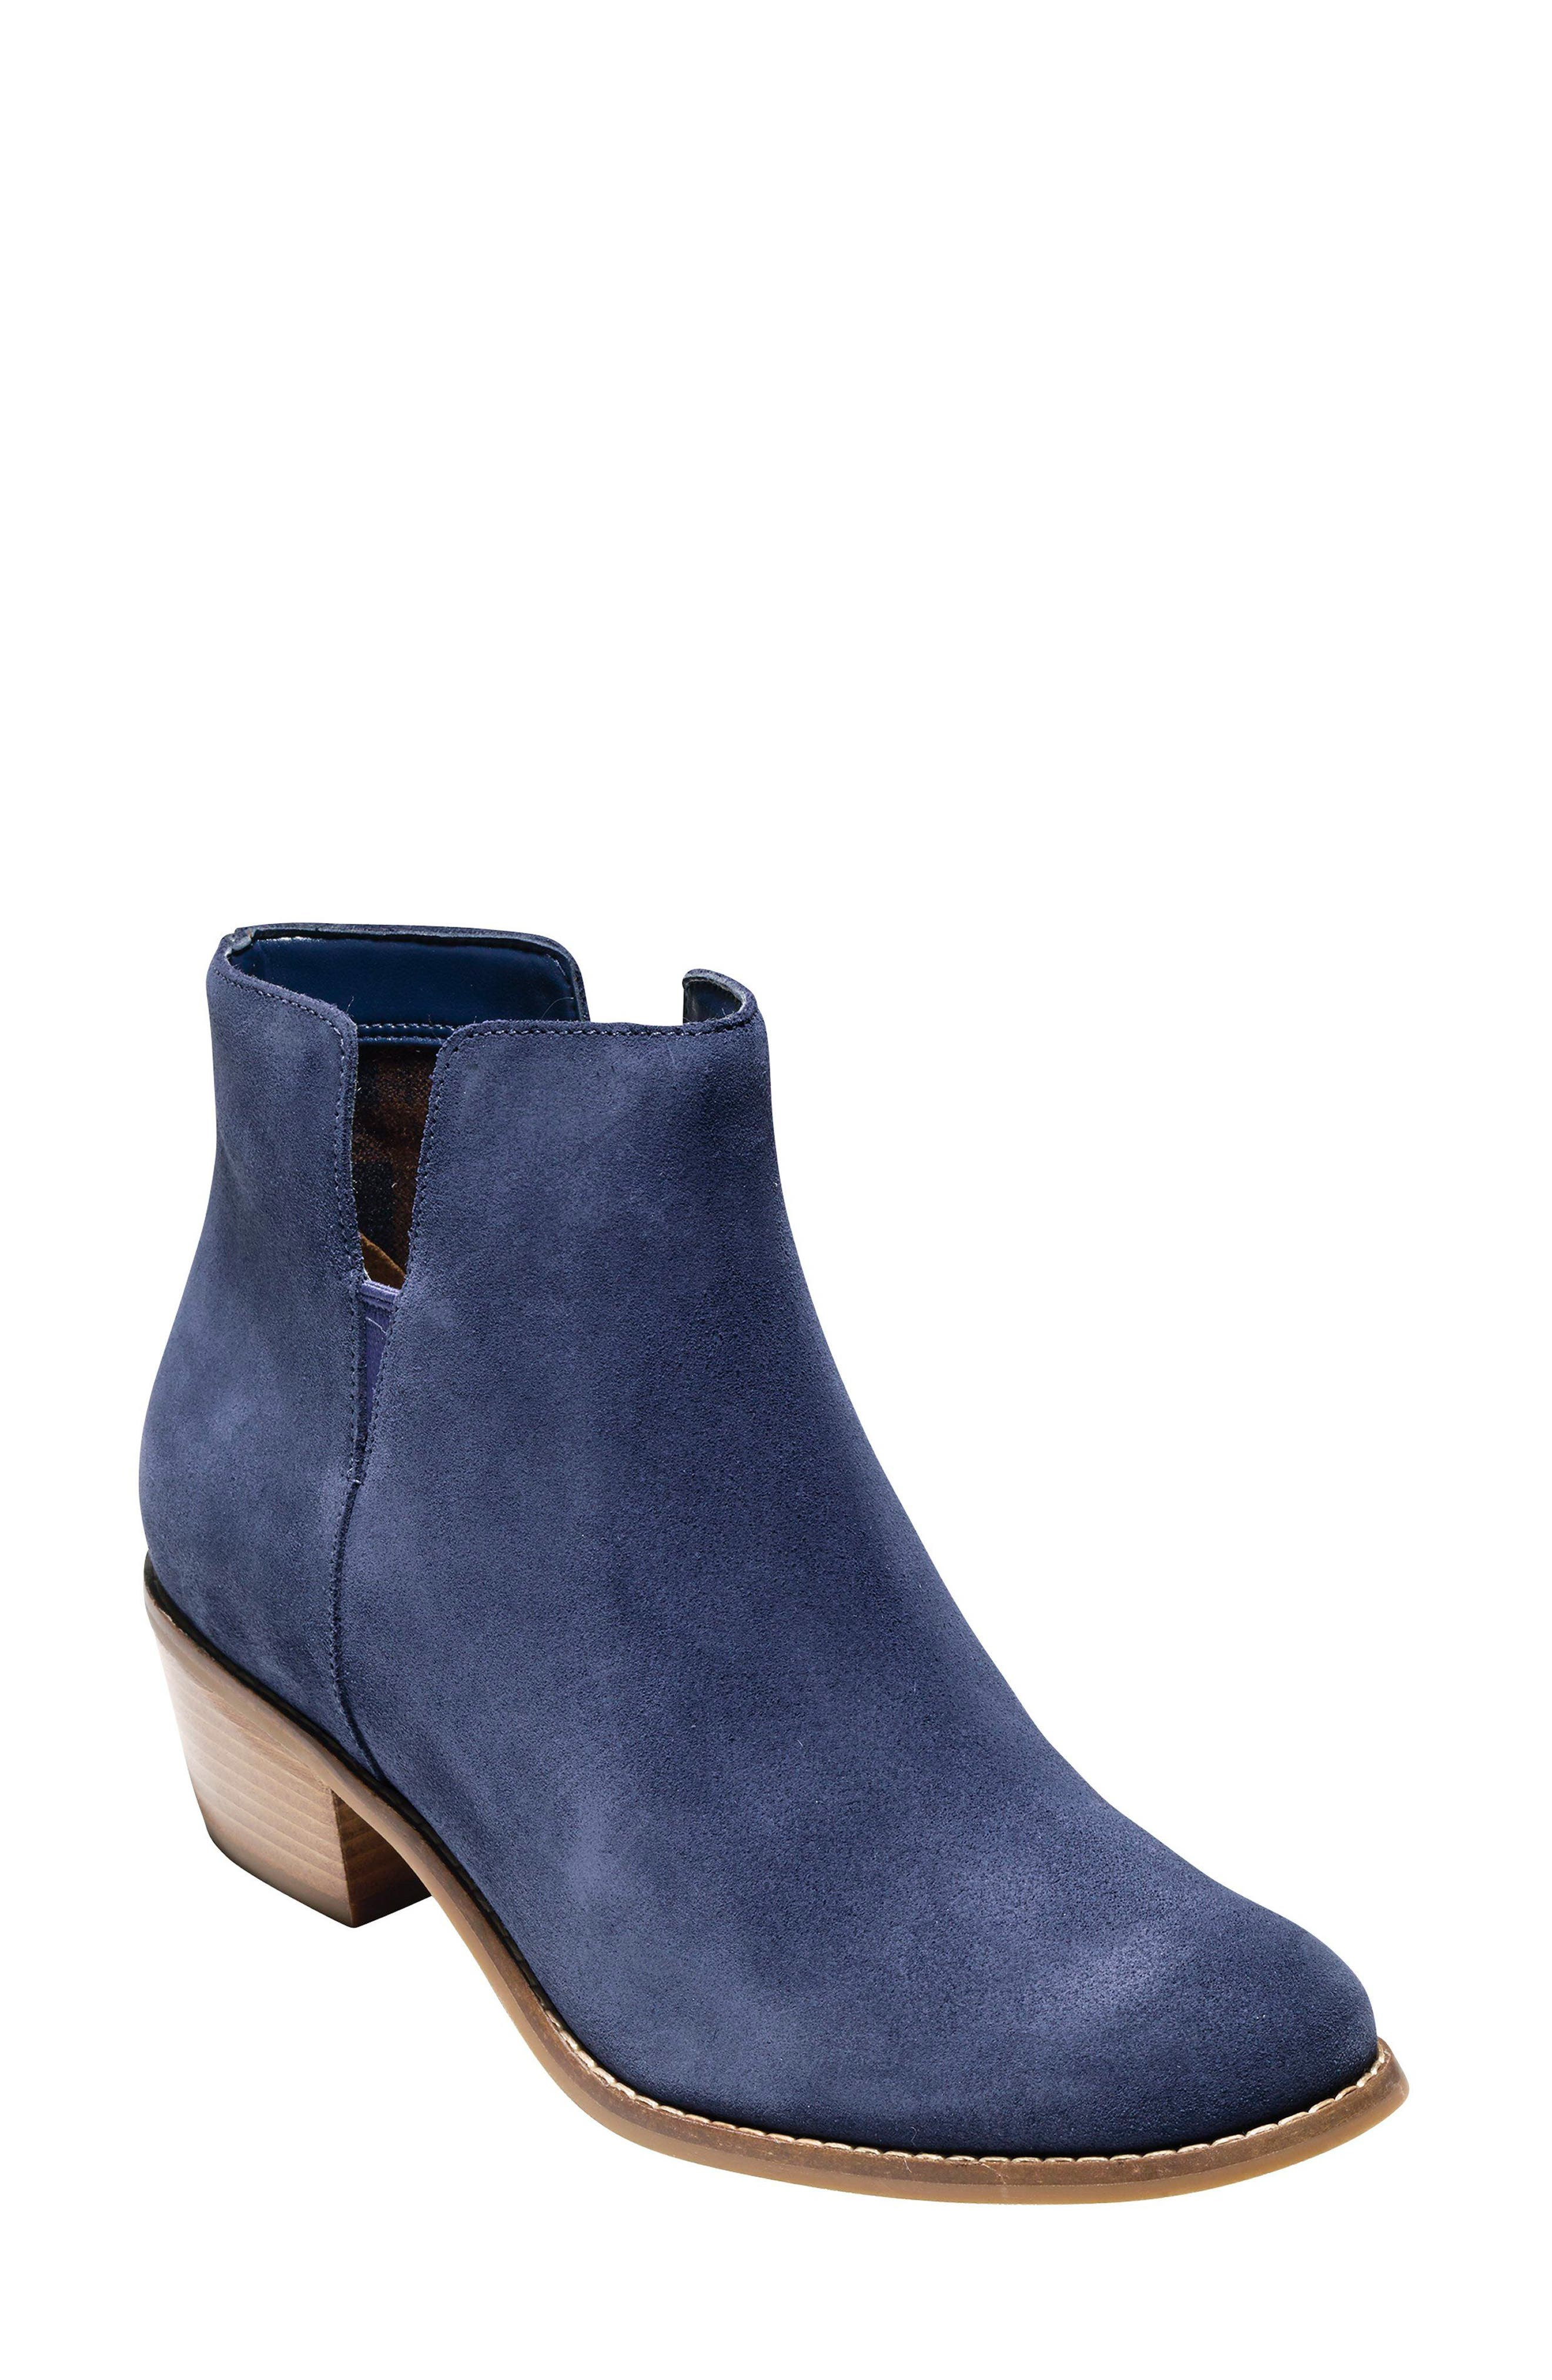 'Abbot' Chelsea Boot,                             Main thumbnail 3, color,